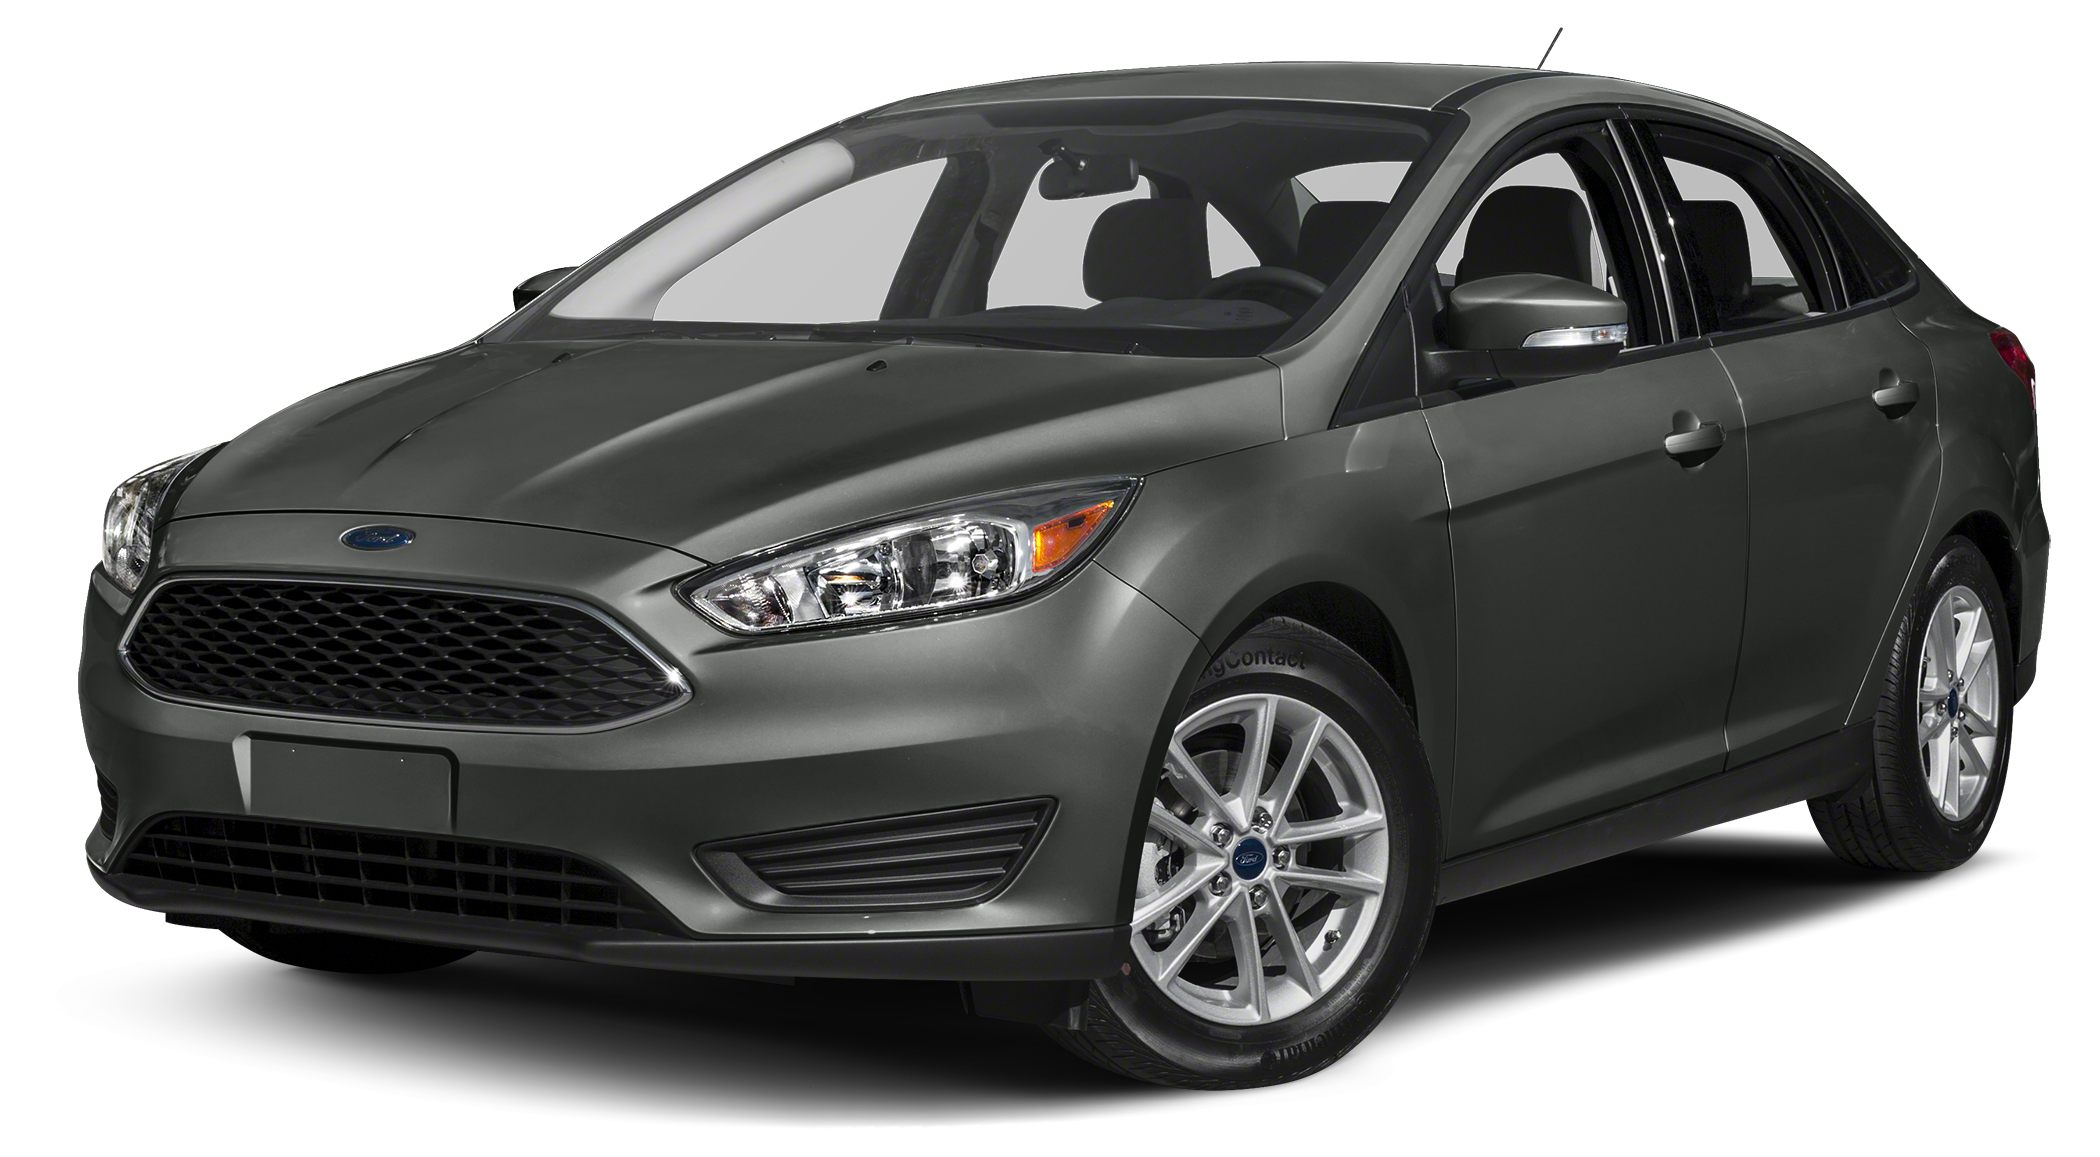 2017 Ford Focus S At Mullinax there are NO DEALER FEES That SAVES you 800 over our largest compe